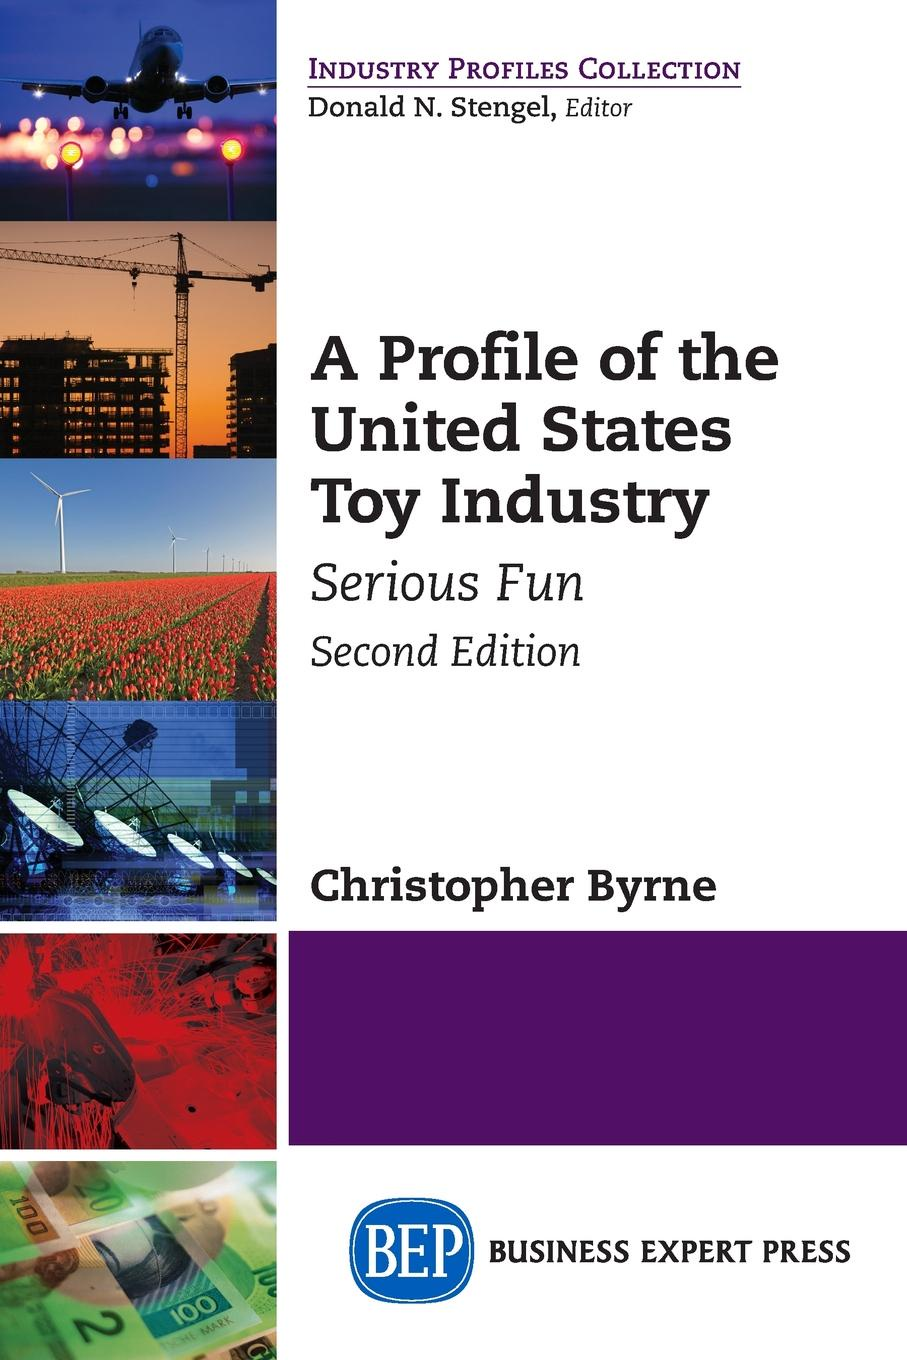 Christopher Byrne A Profile of the United States Toy Industry, Second Edition. Serious Fun halil kiymaz market microstructure in emerging and developed markets price discovery information flows and transaction costs